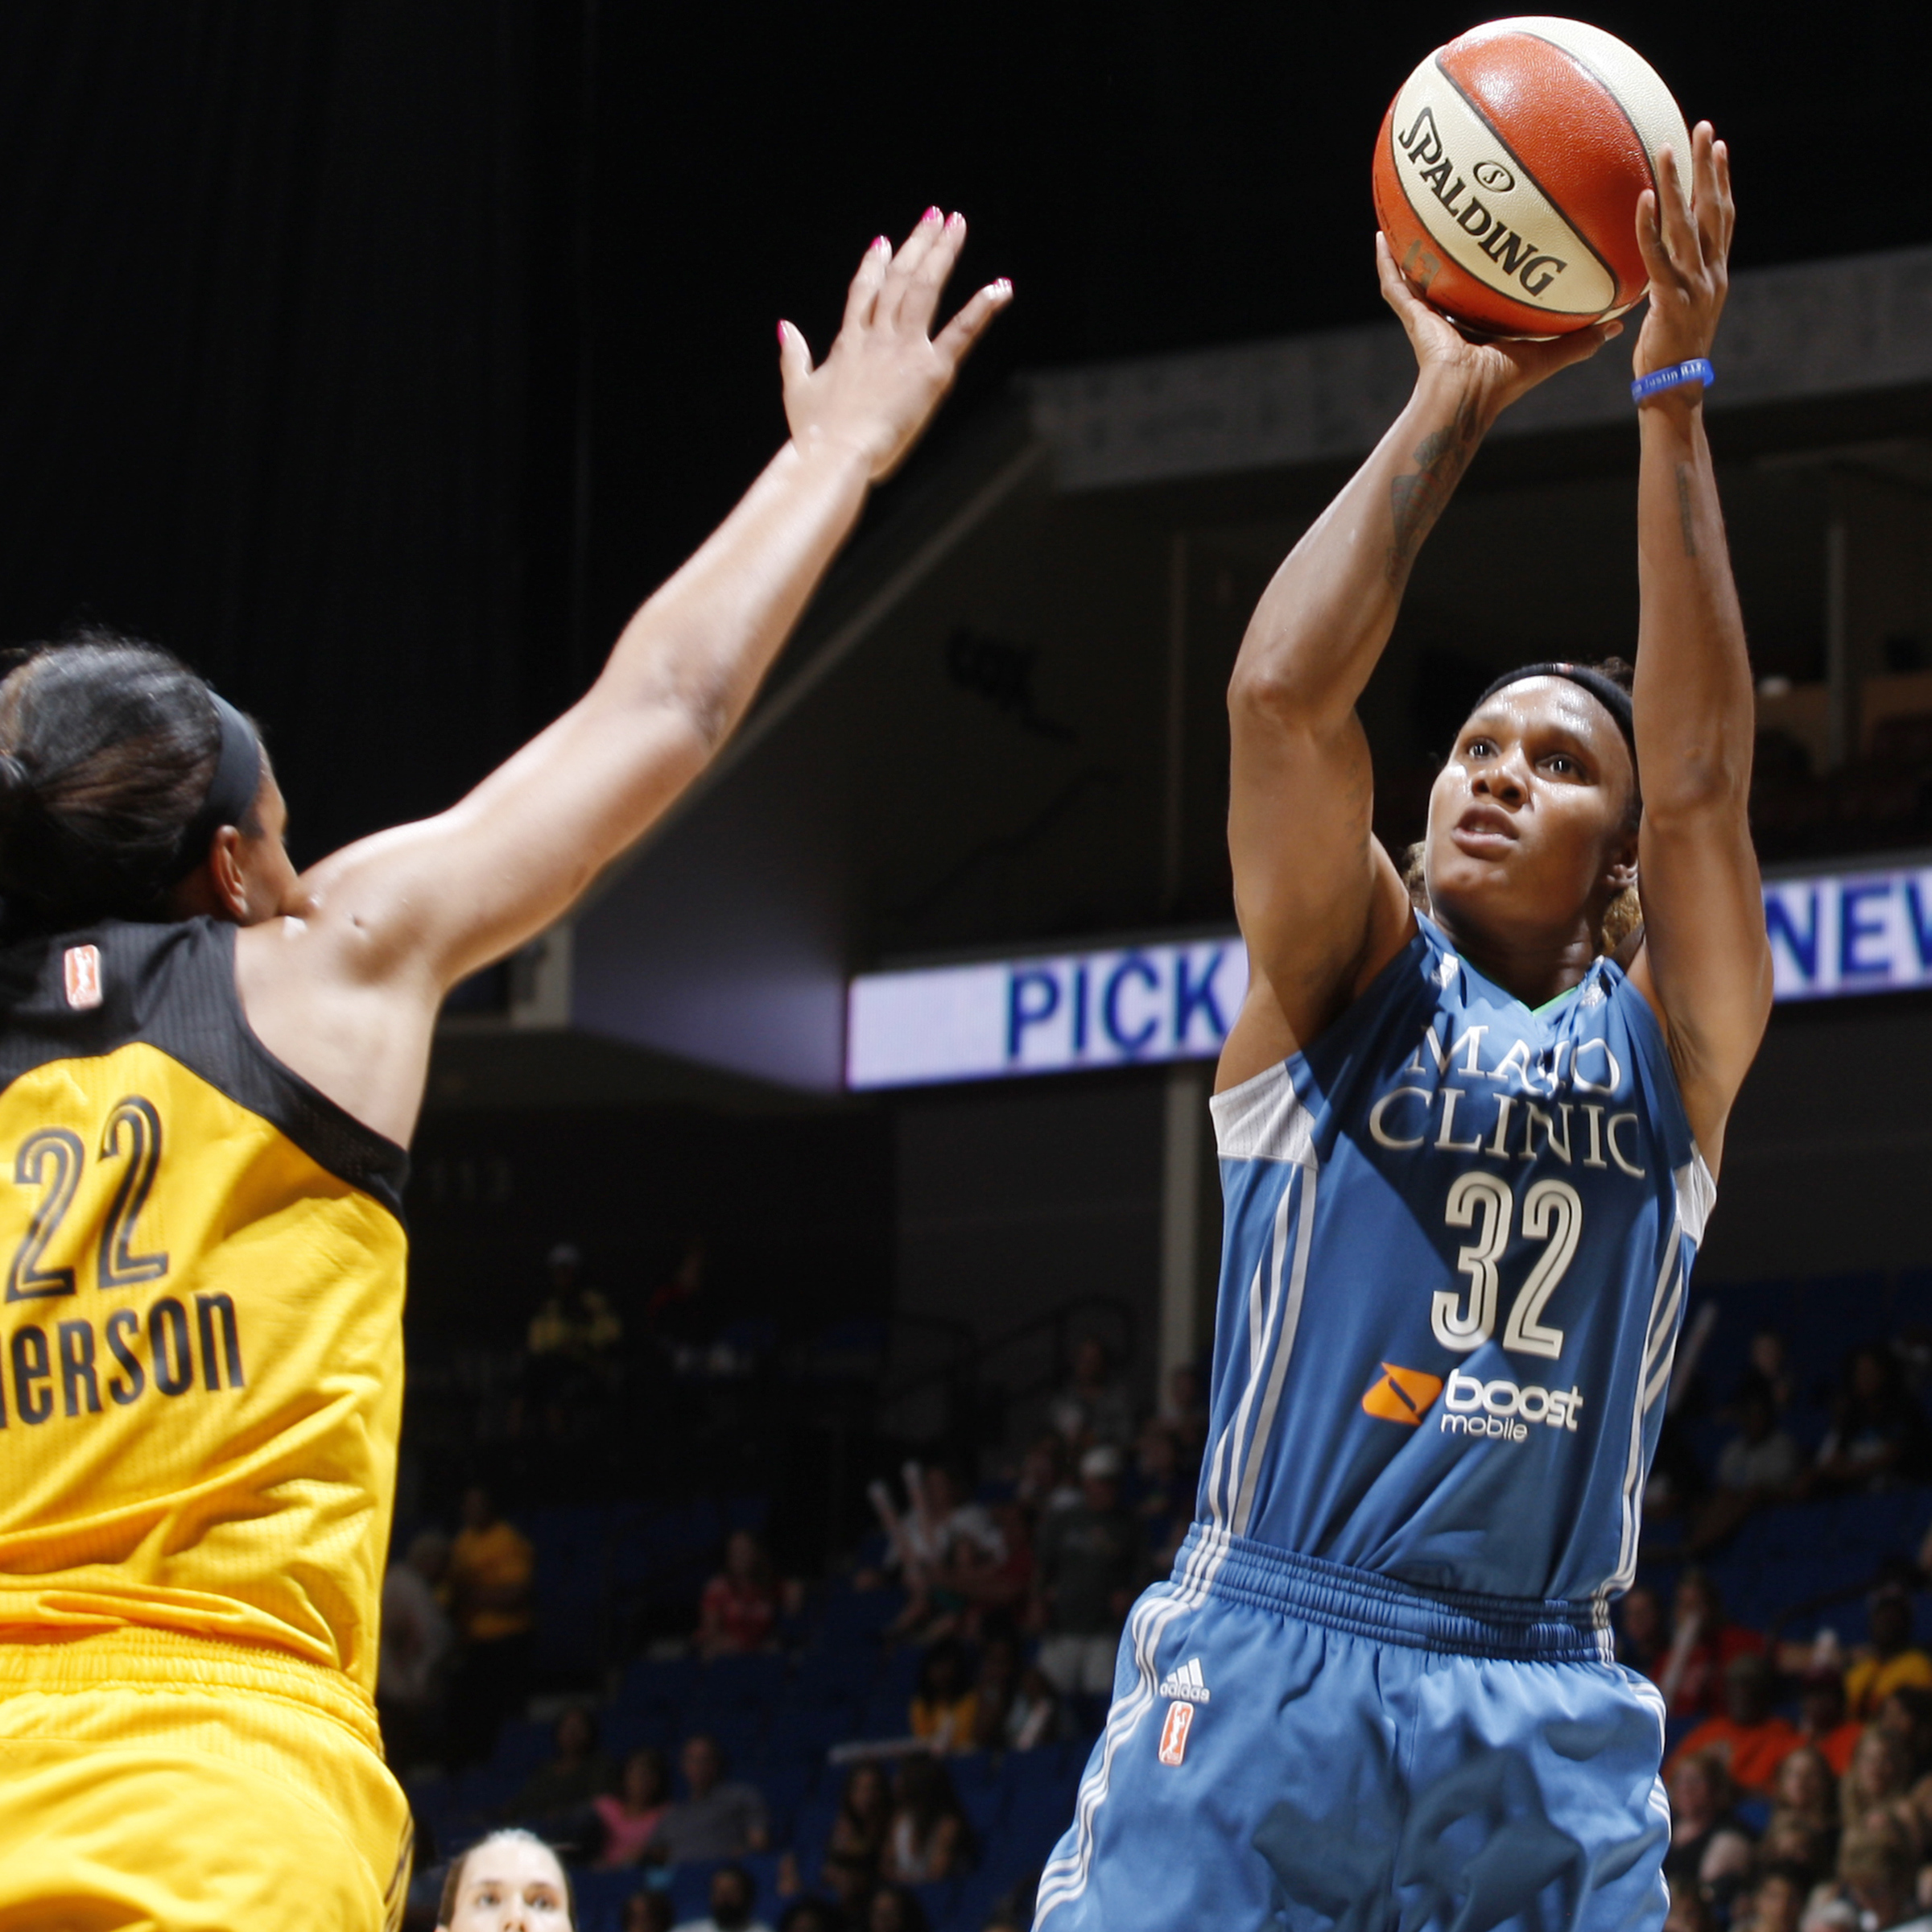 Lynx forward Rebekkah Brunson helped her team on both ends of the floor, scoring 12 points and grabbing 13 rebounds, as well as slowing down Tulsa's post players defensively.